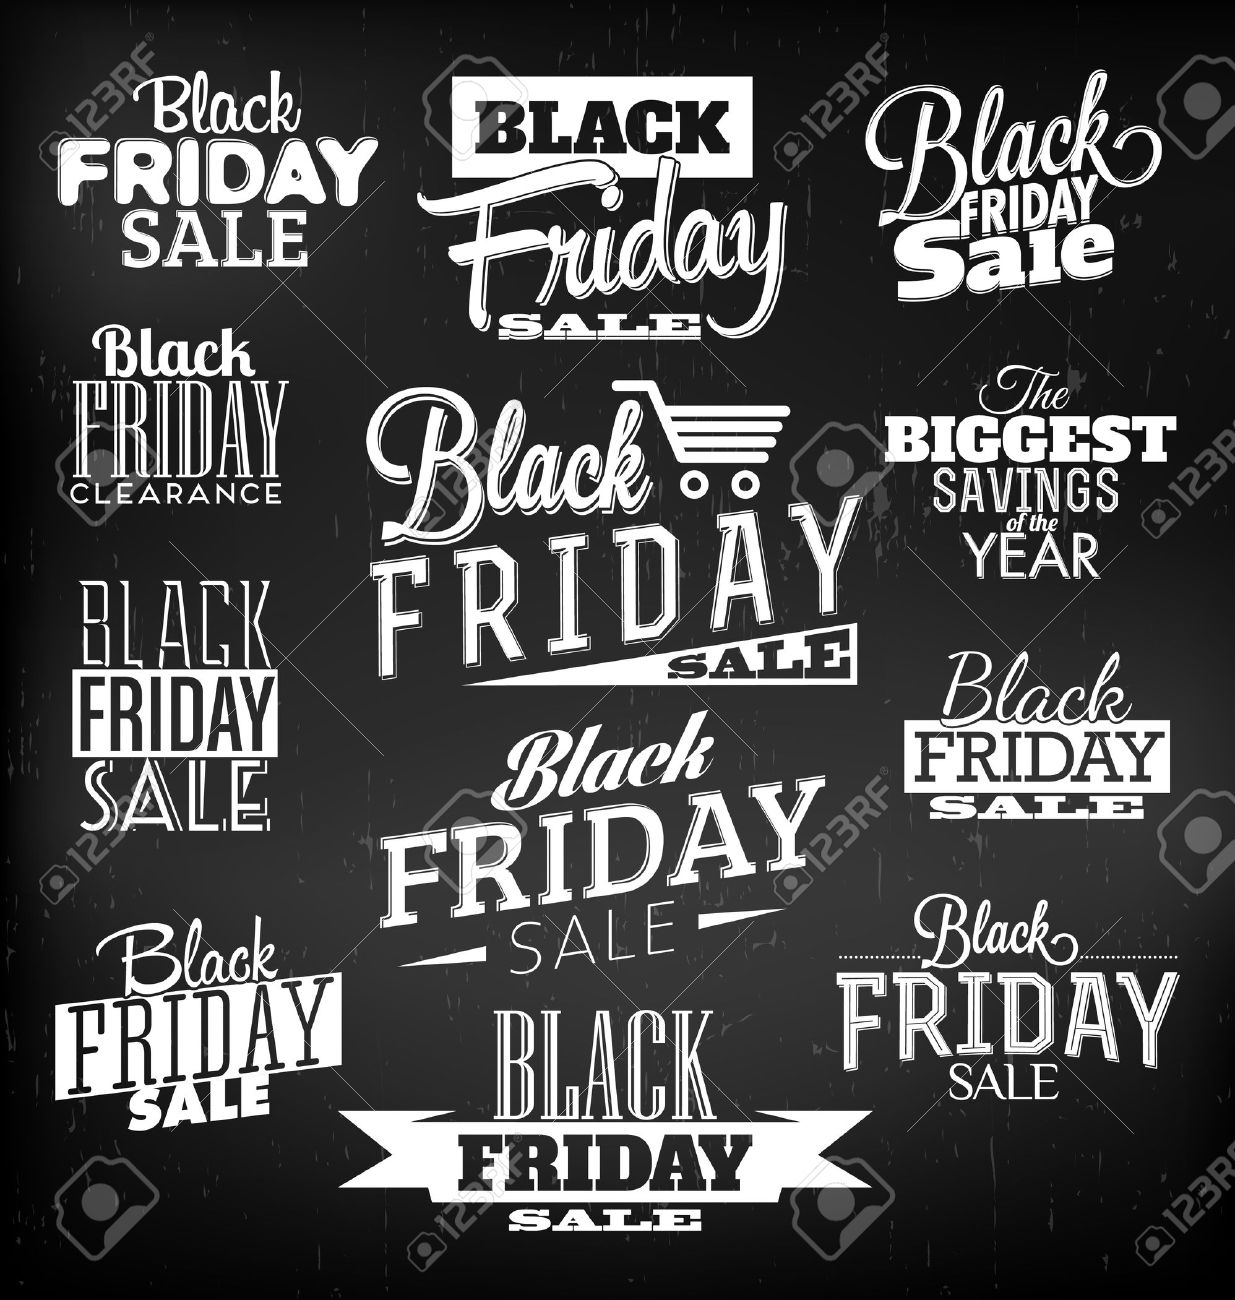 Black Friday Calligraphic Designs Retro Style Elements Vintage Ornaments Sale, Clearance Vector Set - 23076785